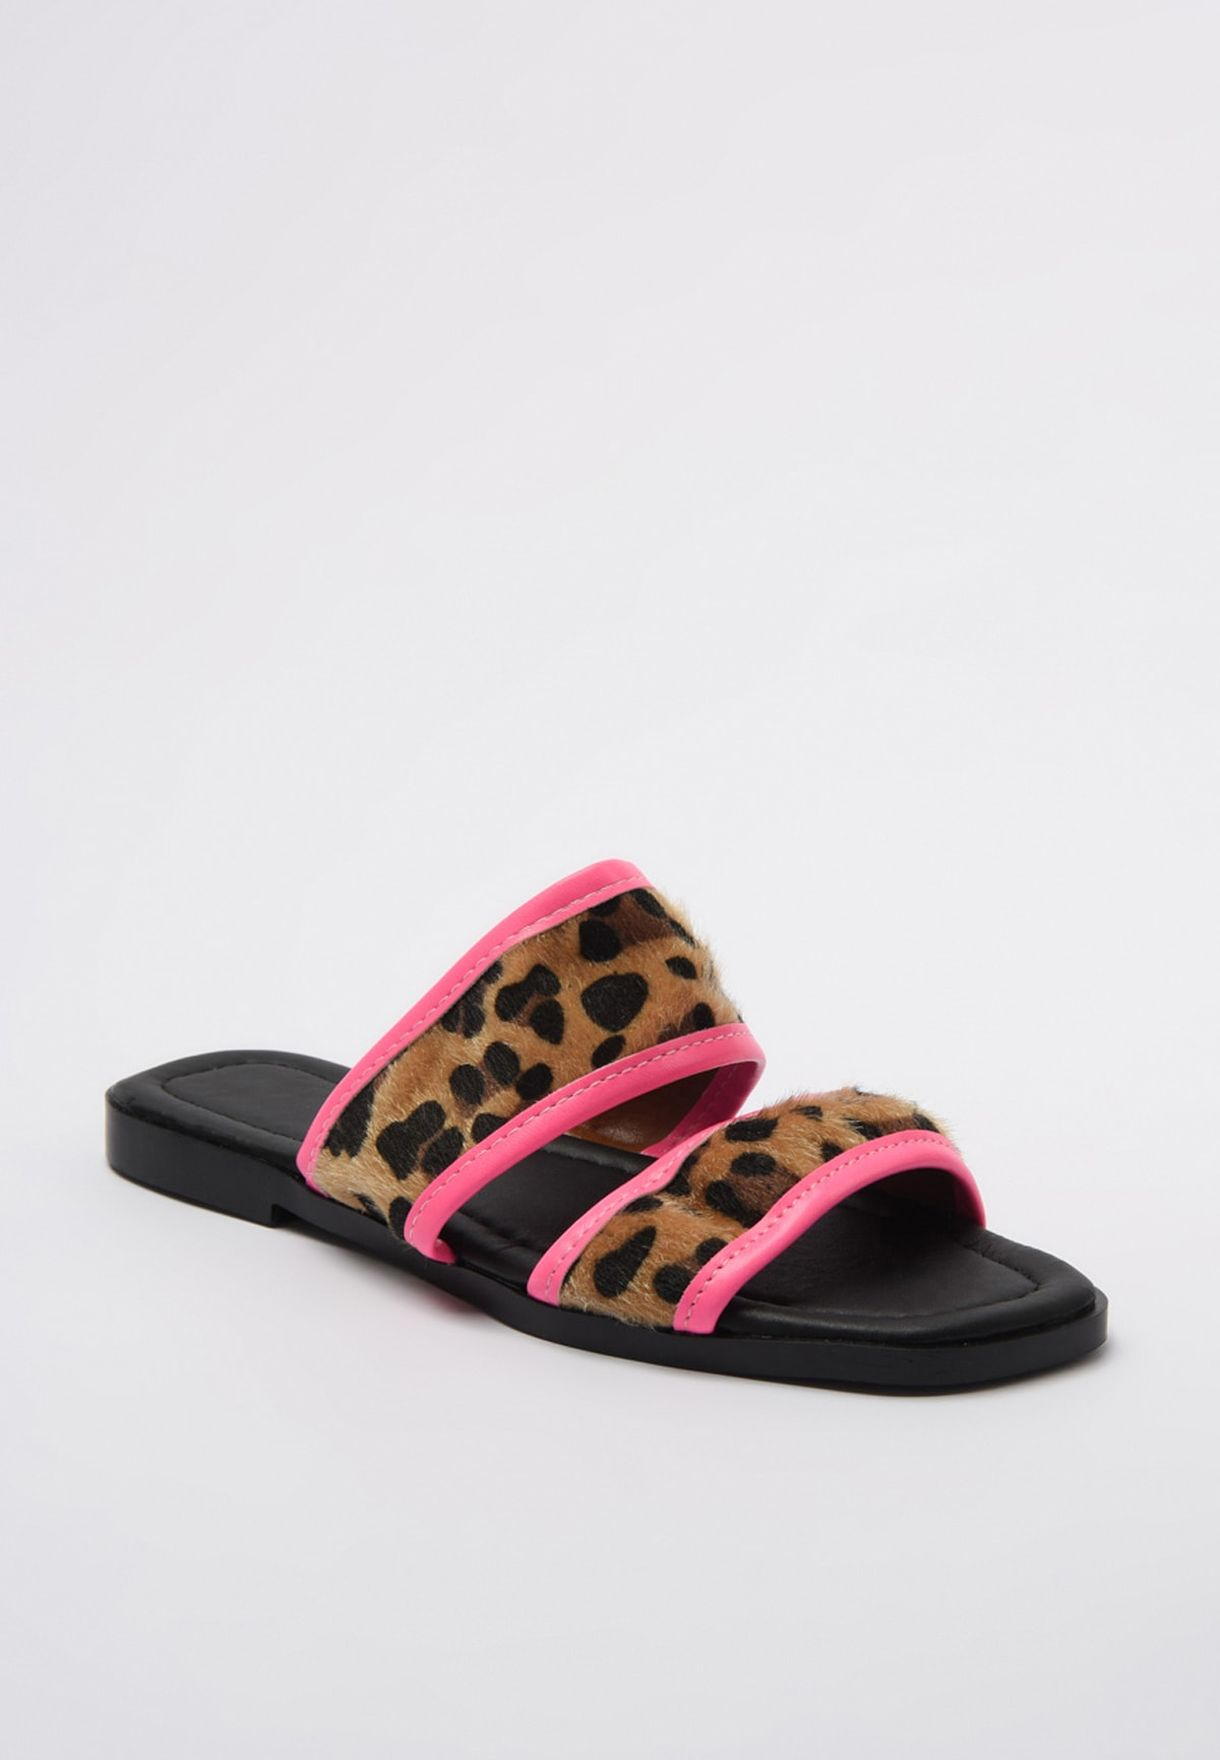 Trendyol Animal Print Multi Strap Flat Sandal - Brand Shoes